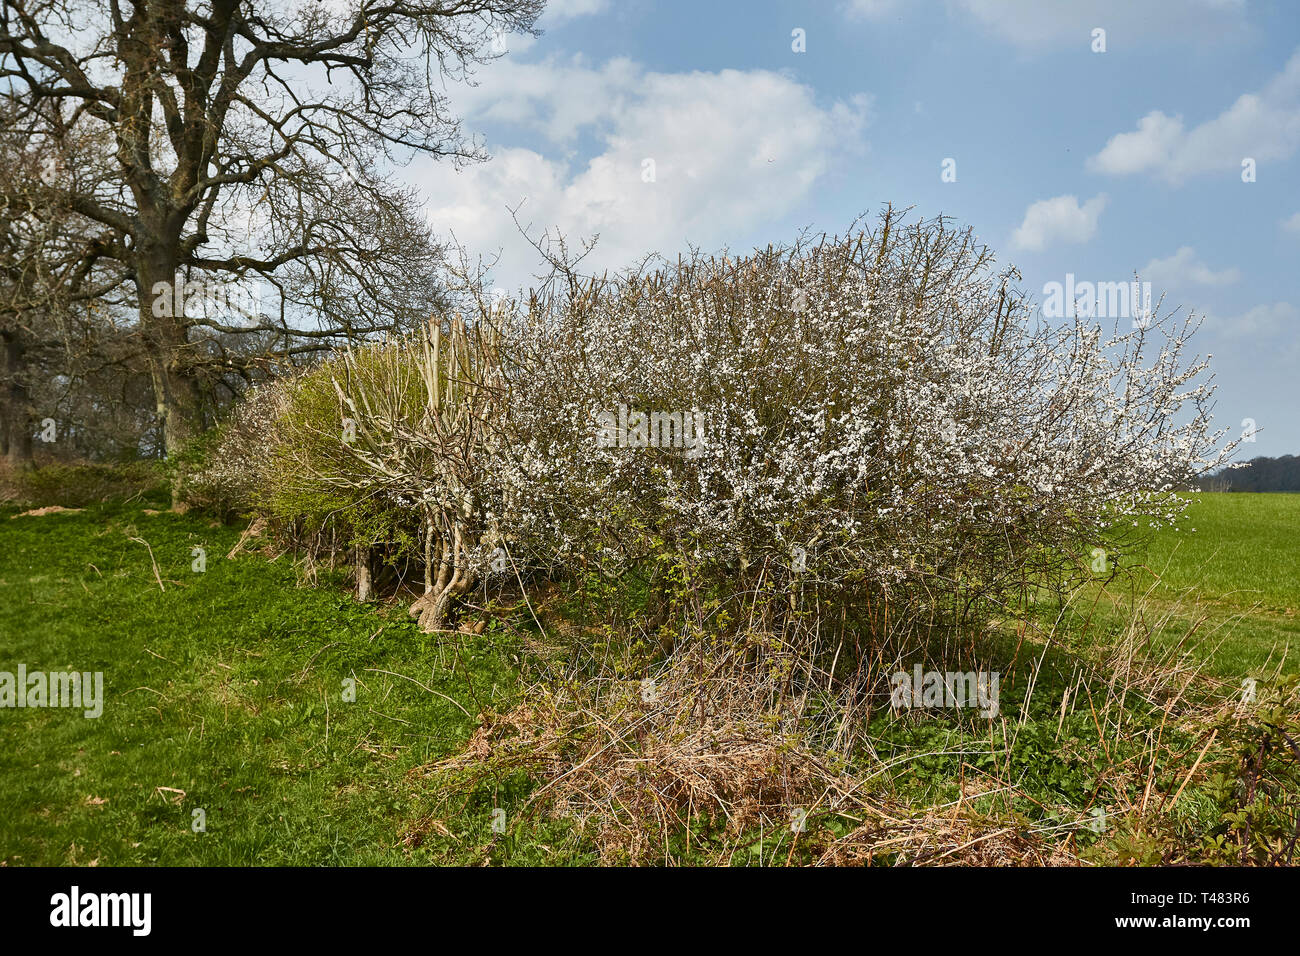 Hawthorne hedge in blossom during an English spring, Surrey, England, United Kingdom, Europe Stock Photo